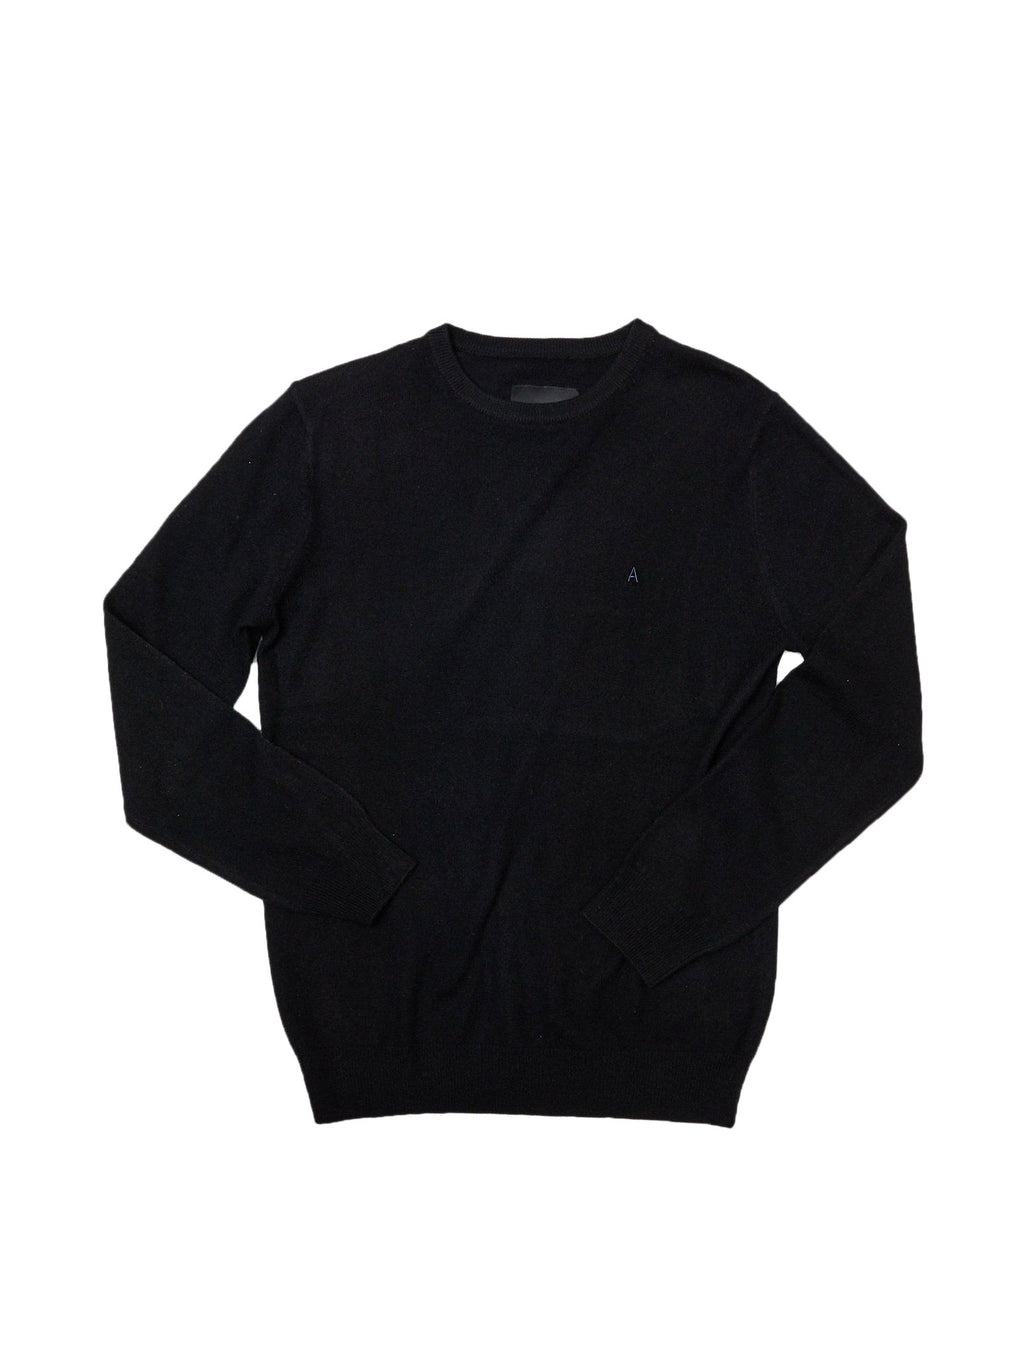 Black Monogram Cashmere Sweater